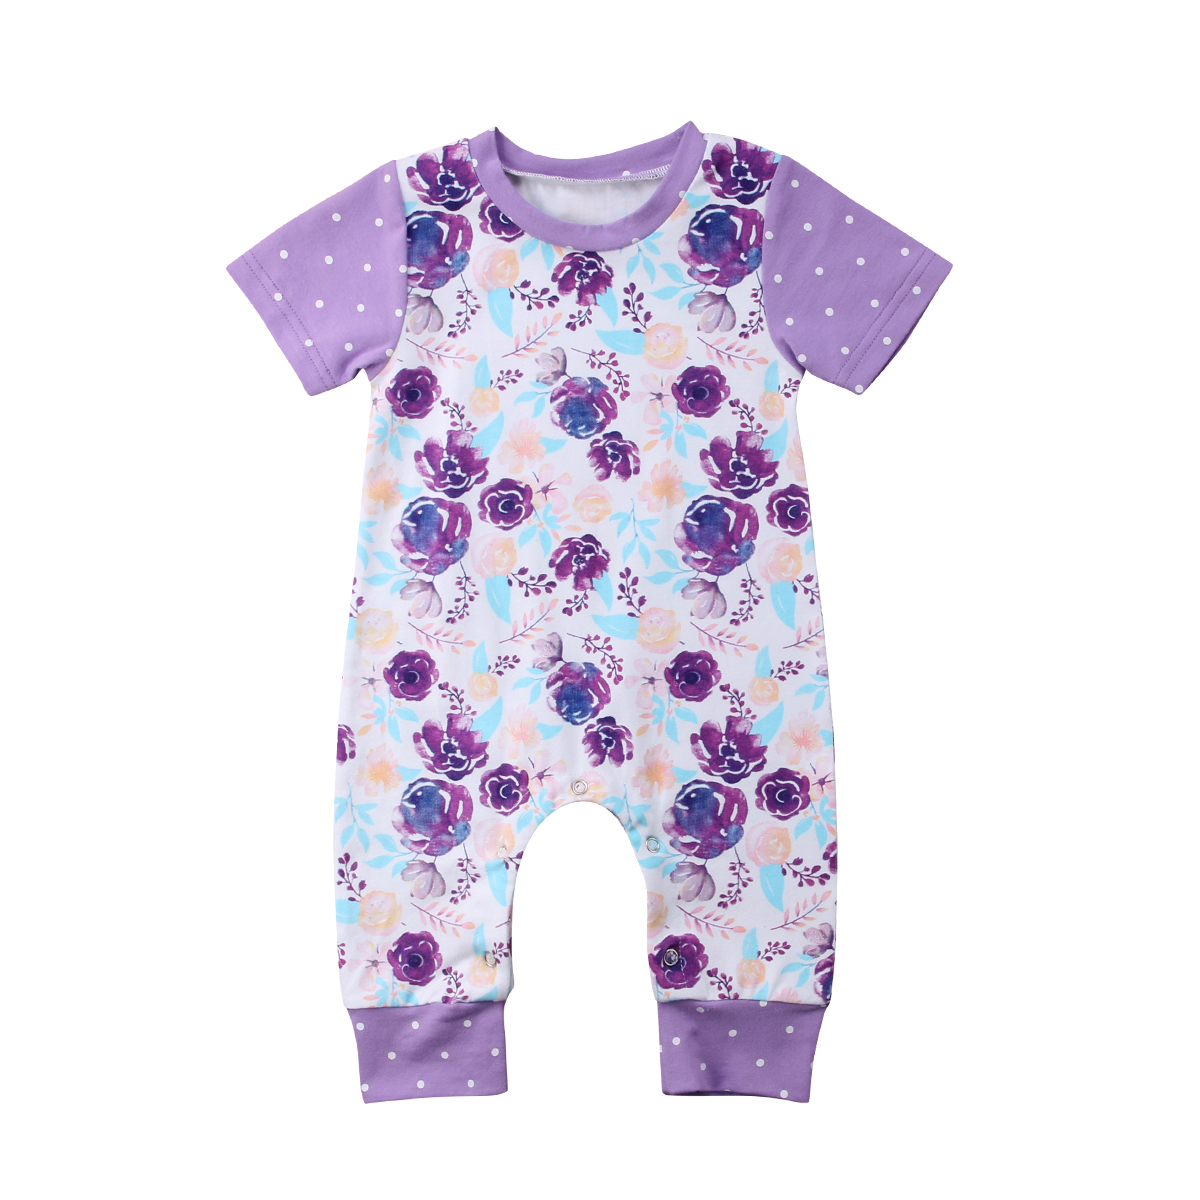 New Arrival Newborn Infant Baby Boy Girl Short Sleeve Floral Jumpsuit Romper 2018 Summer New Children Outfit Sunsuit